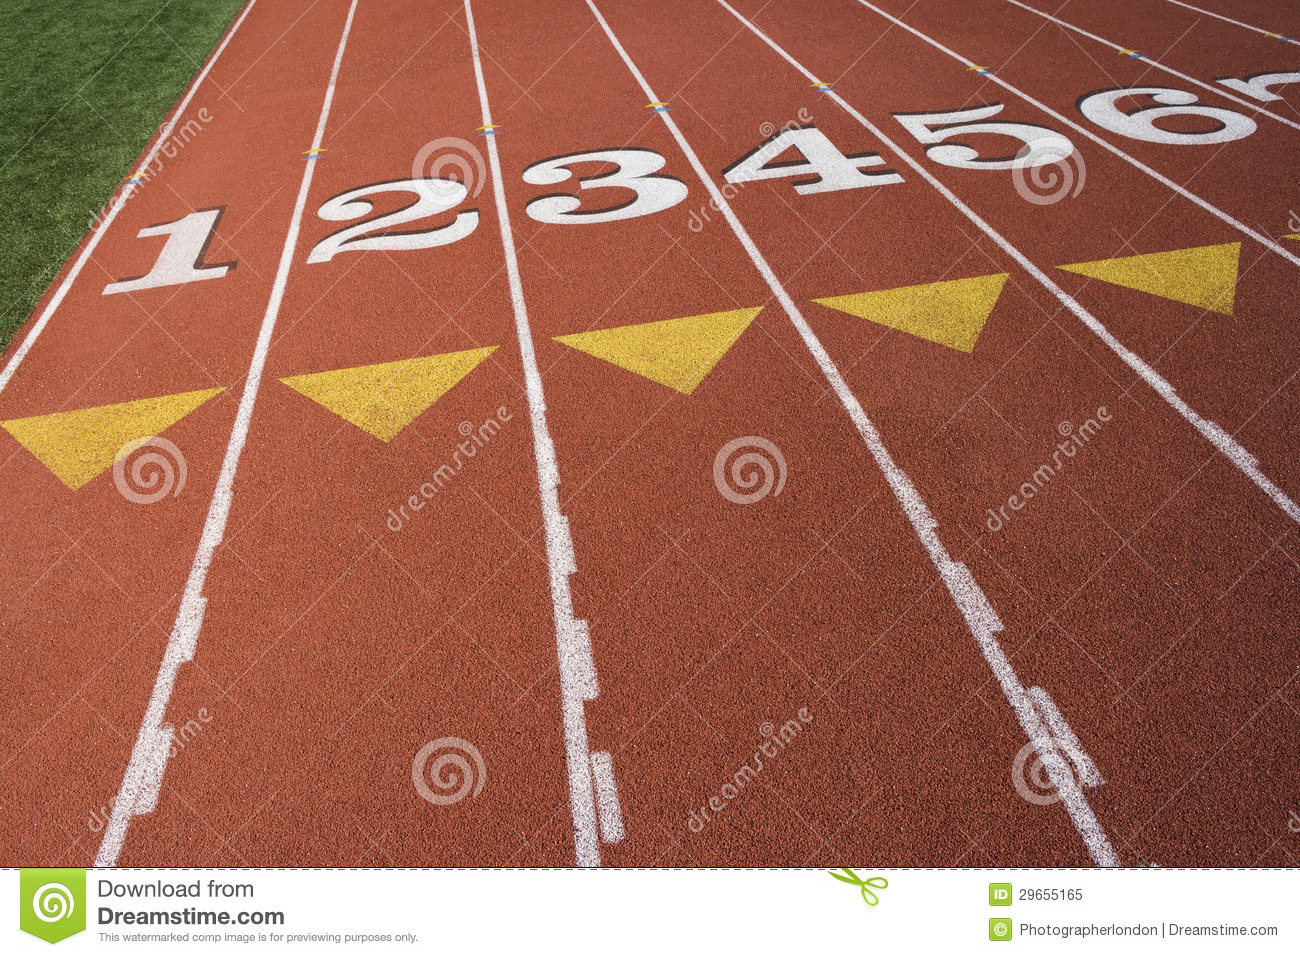 Http Www Dreamstime Com Royalty Free Stock Photo Starting Line Race Track Image29655165